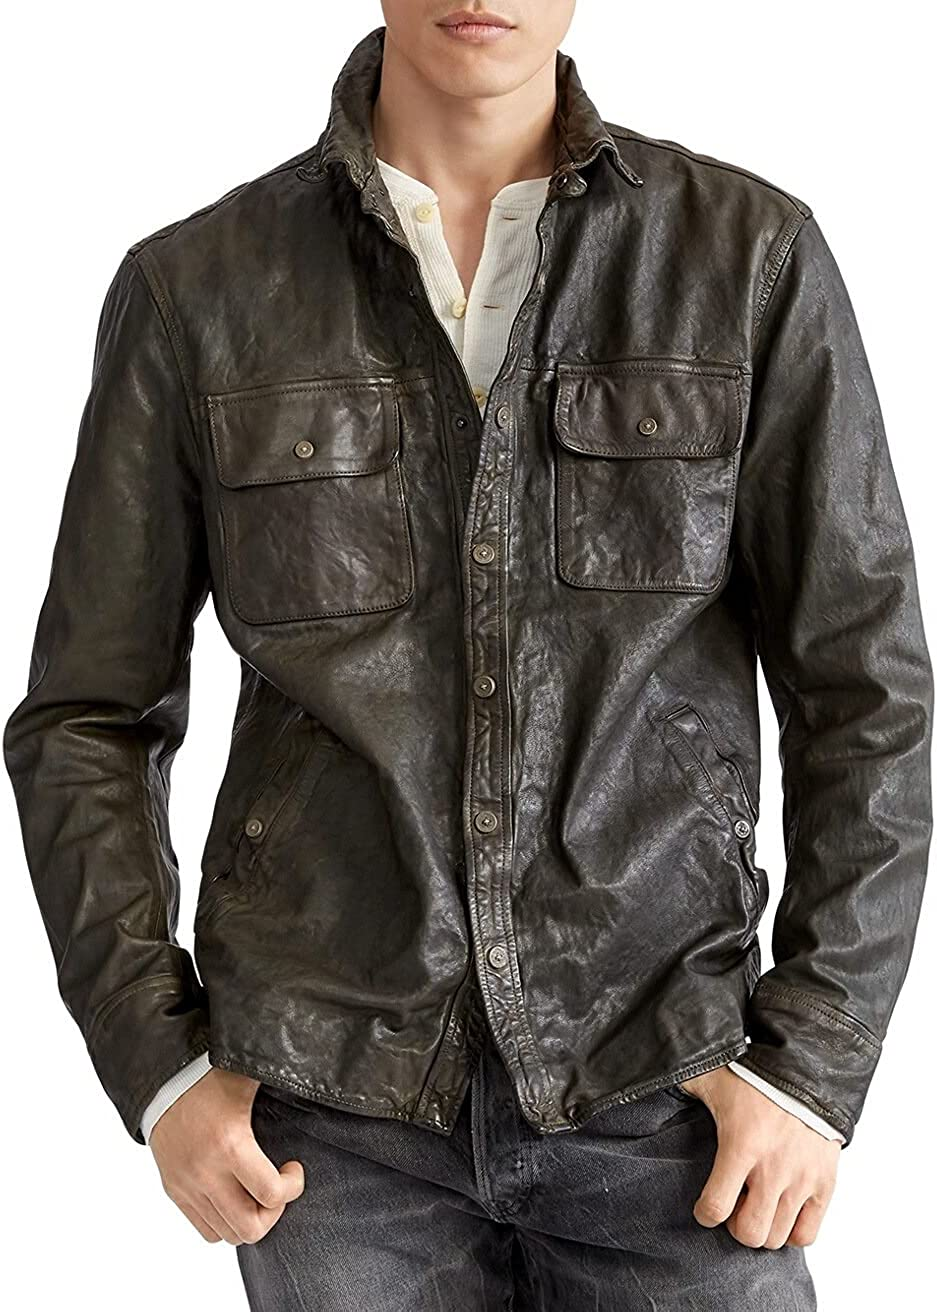 Polo Ralph Lauren COMPANY OLIVE Men's Leather CPO Shirt Jacket, US Small